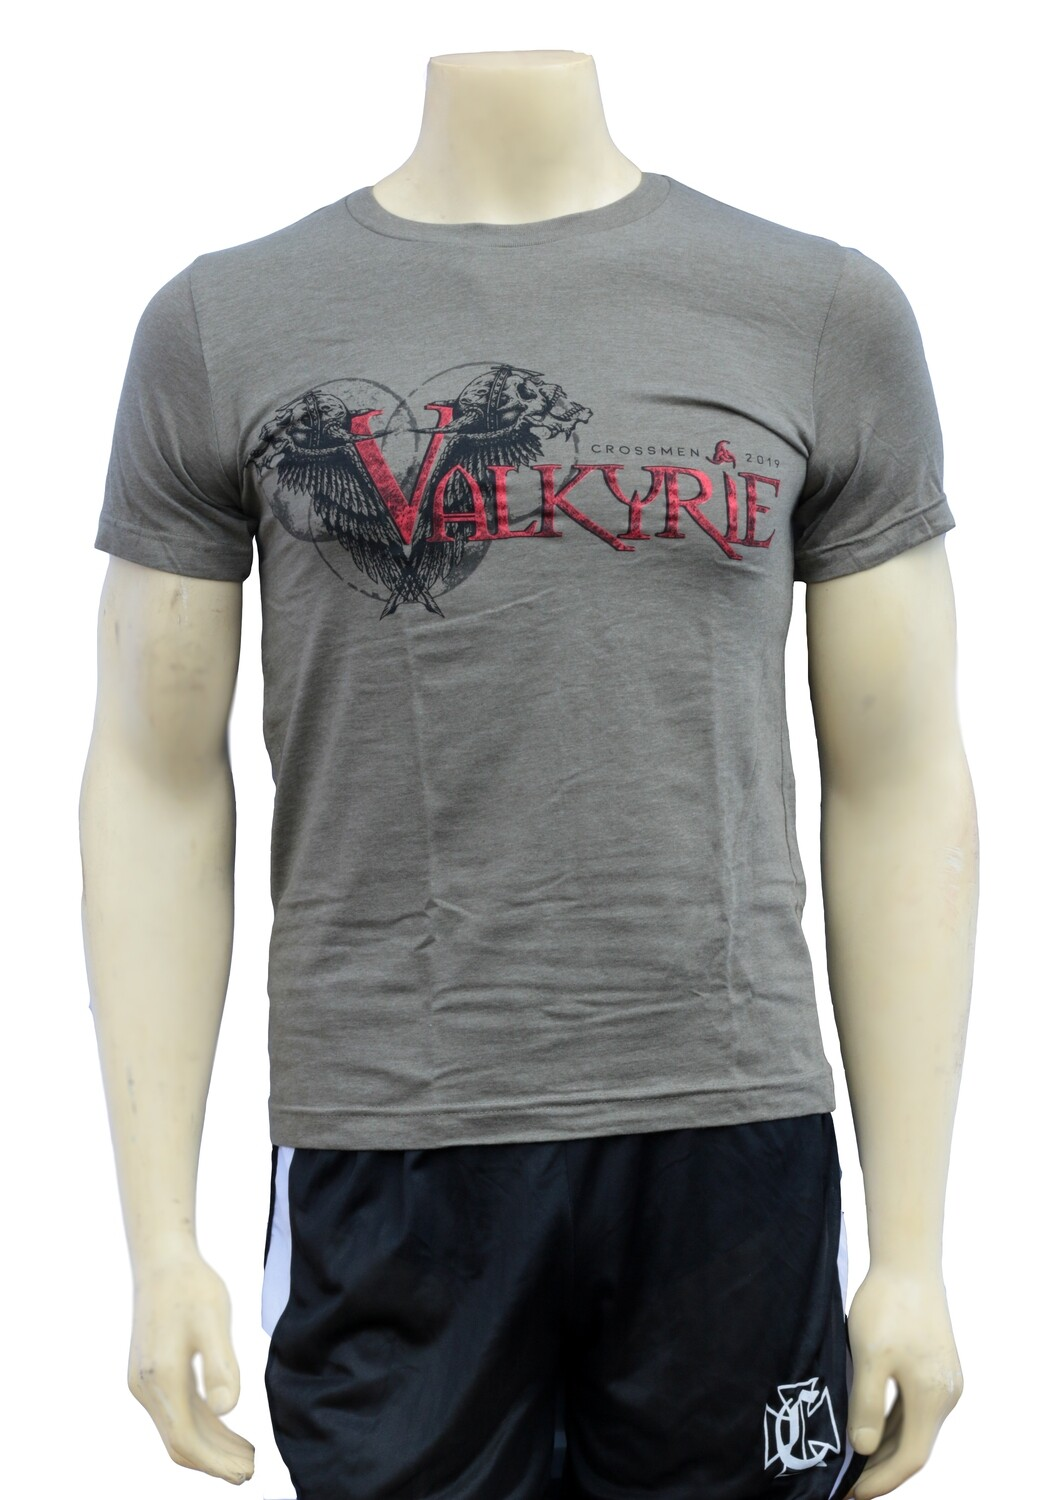 Valkyrie Tour Shirt